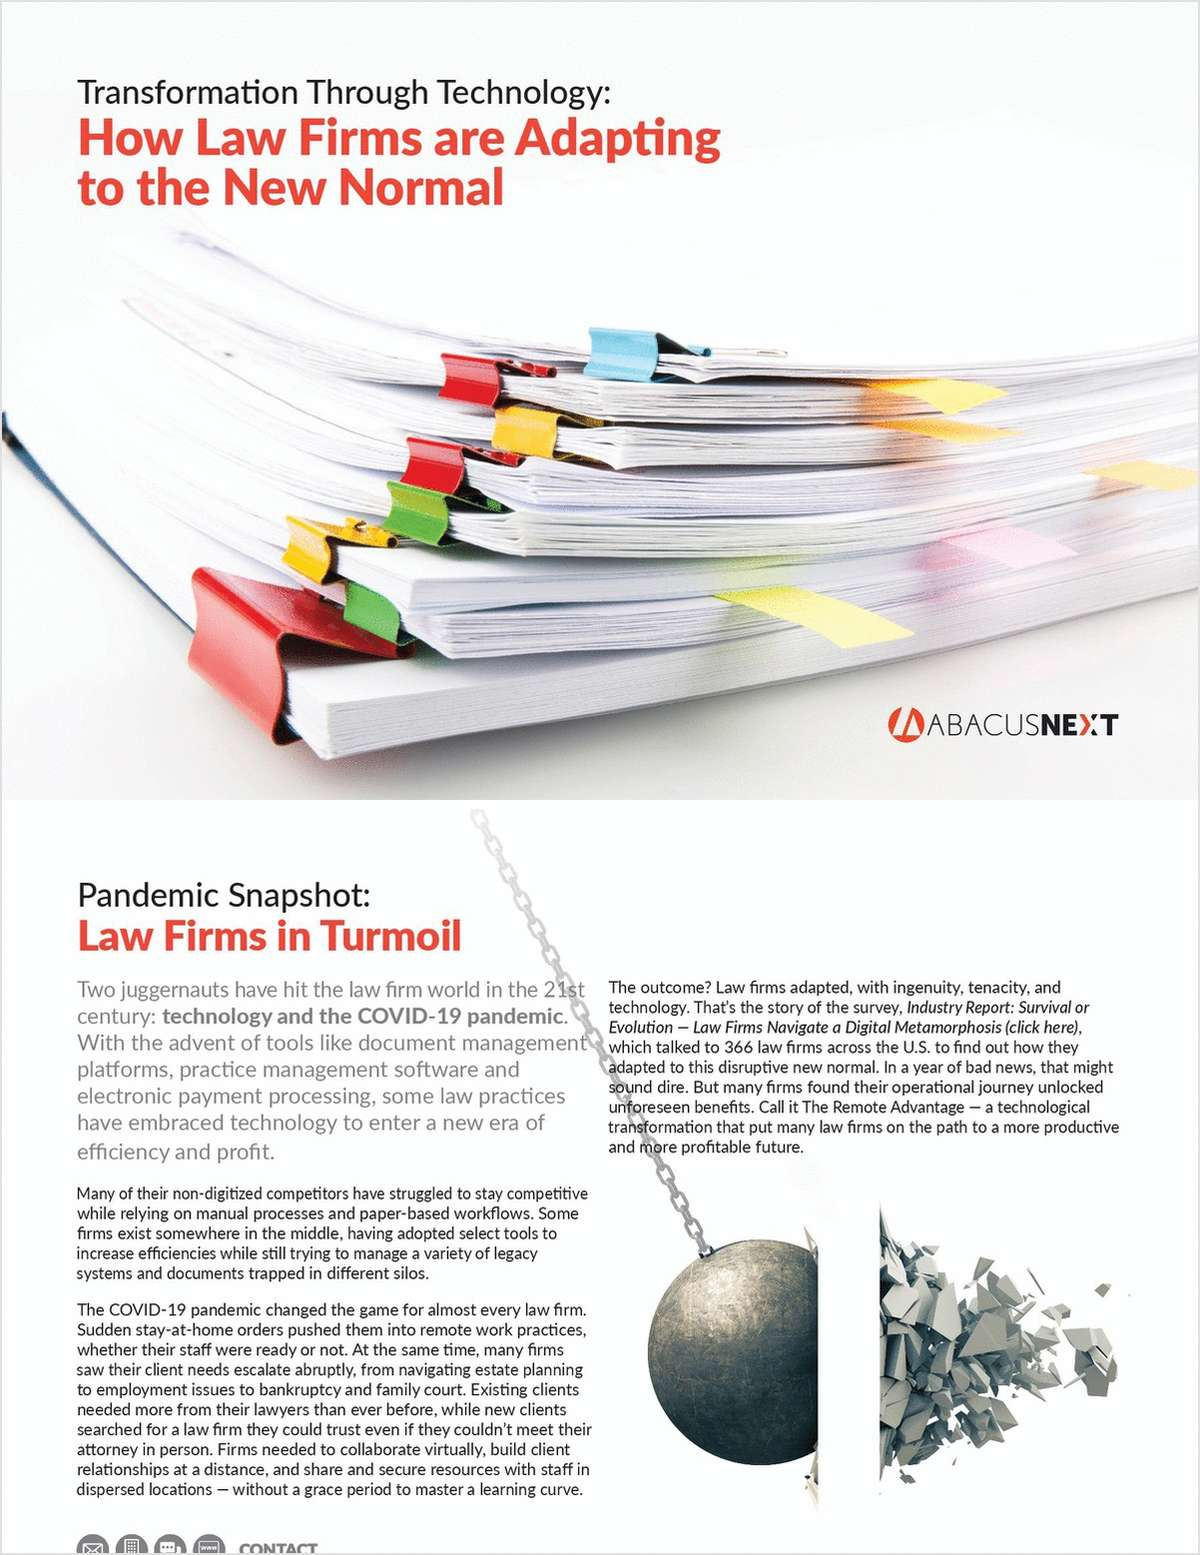 Transformation Through Technology: How Law Firms are Adapting to the New Normal